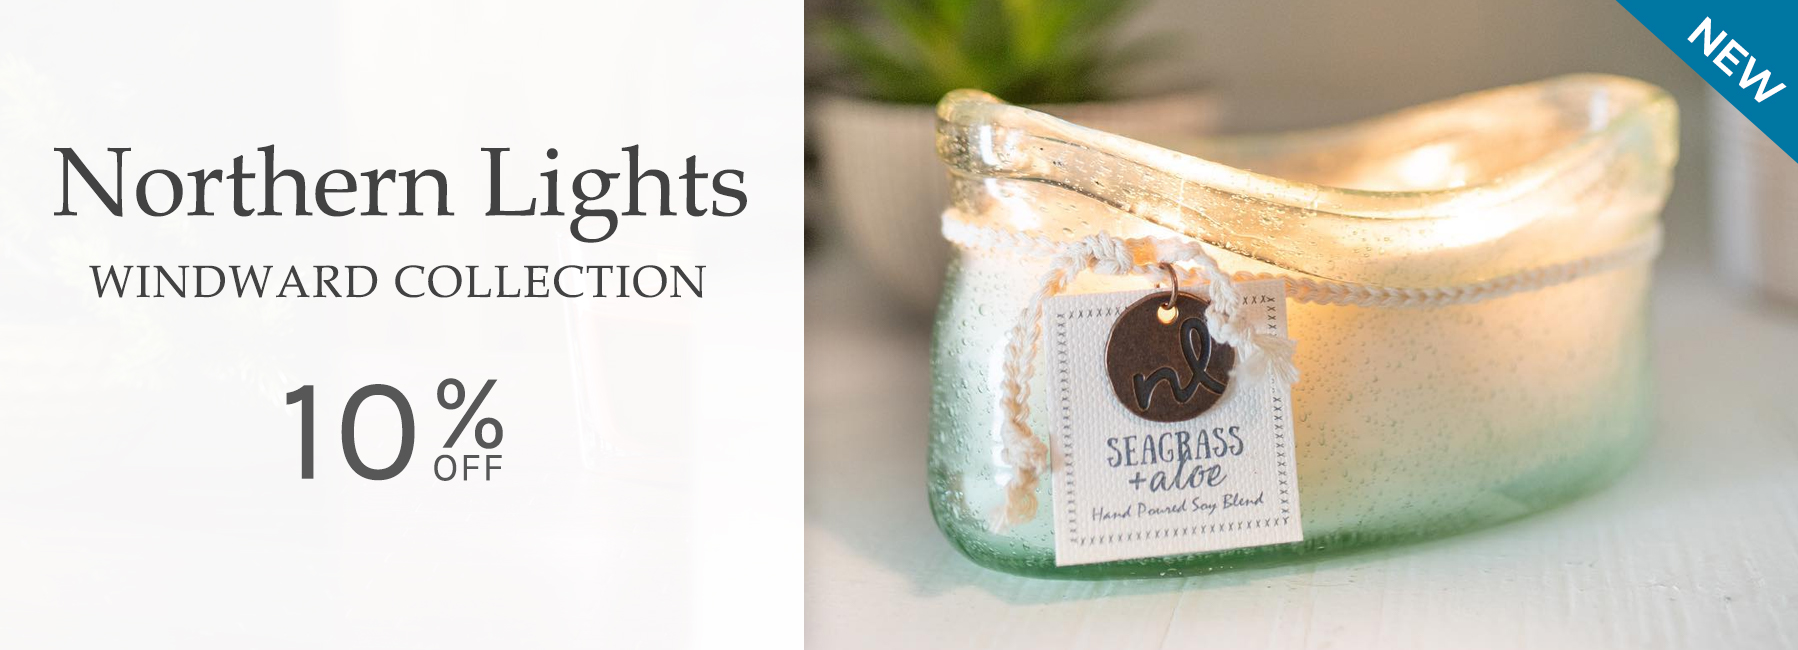 Northern Lights - Windward Collection - 10 Percent OFF